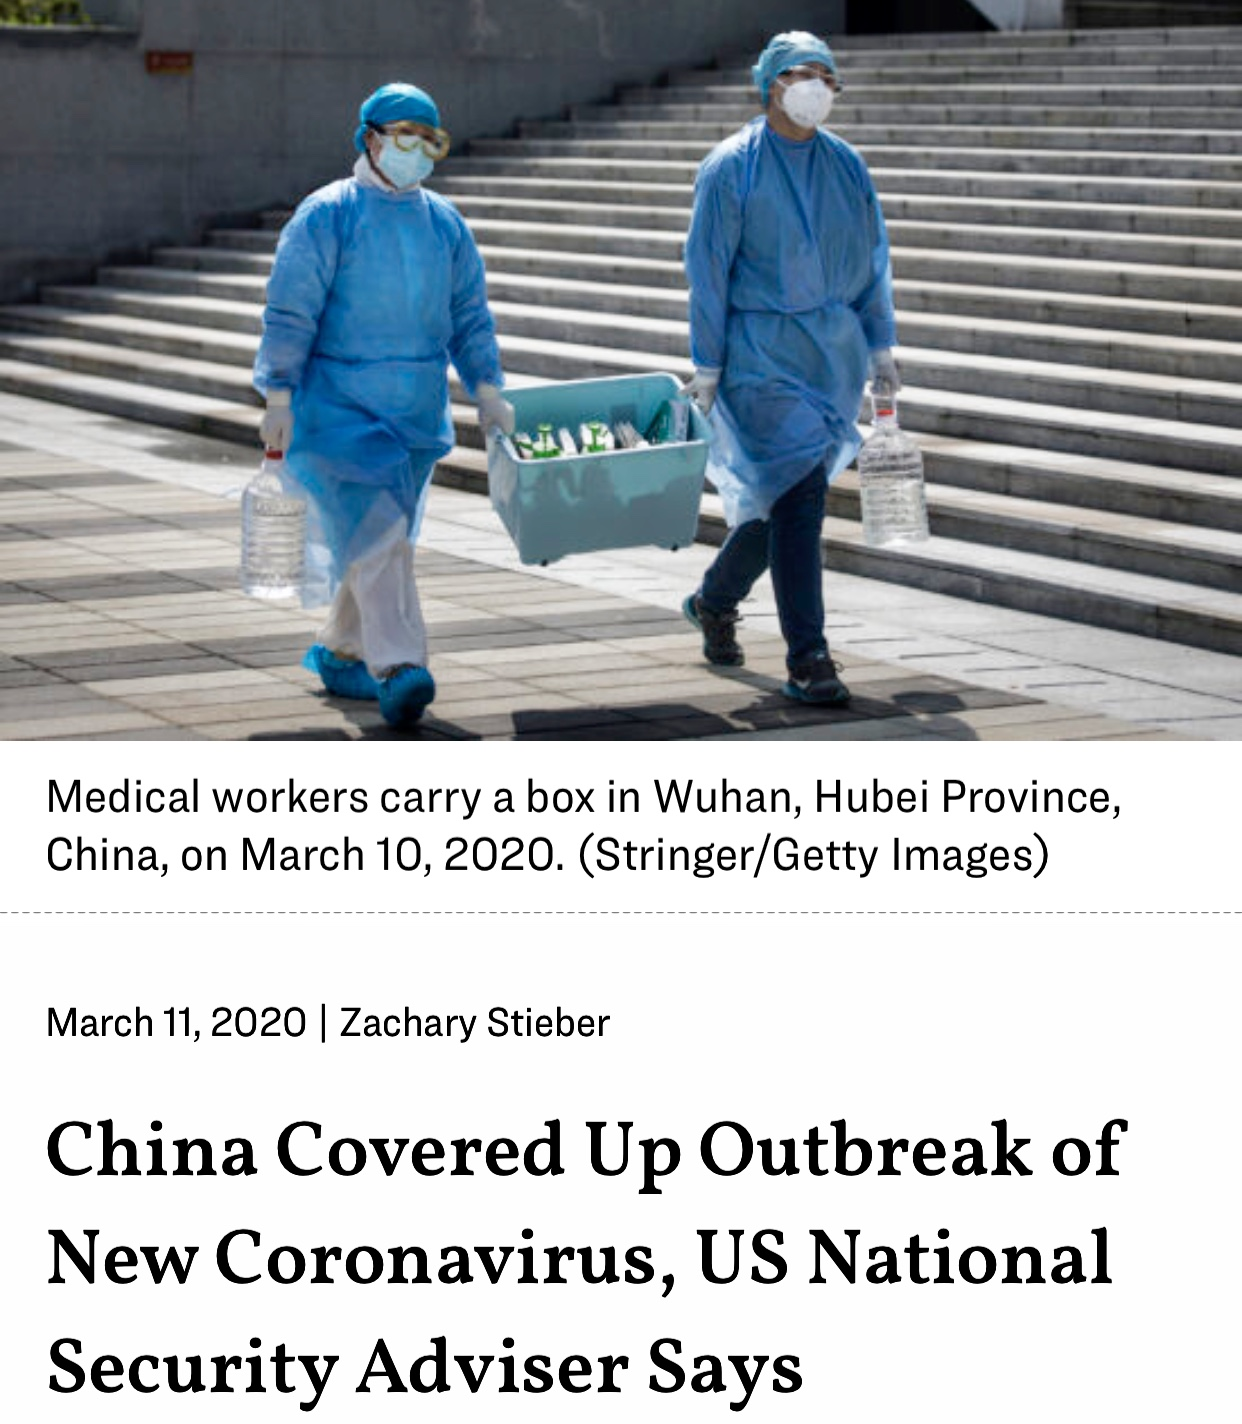 US National Security Adviser Says China Covered Up Outbreak of Coronavirus